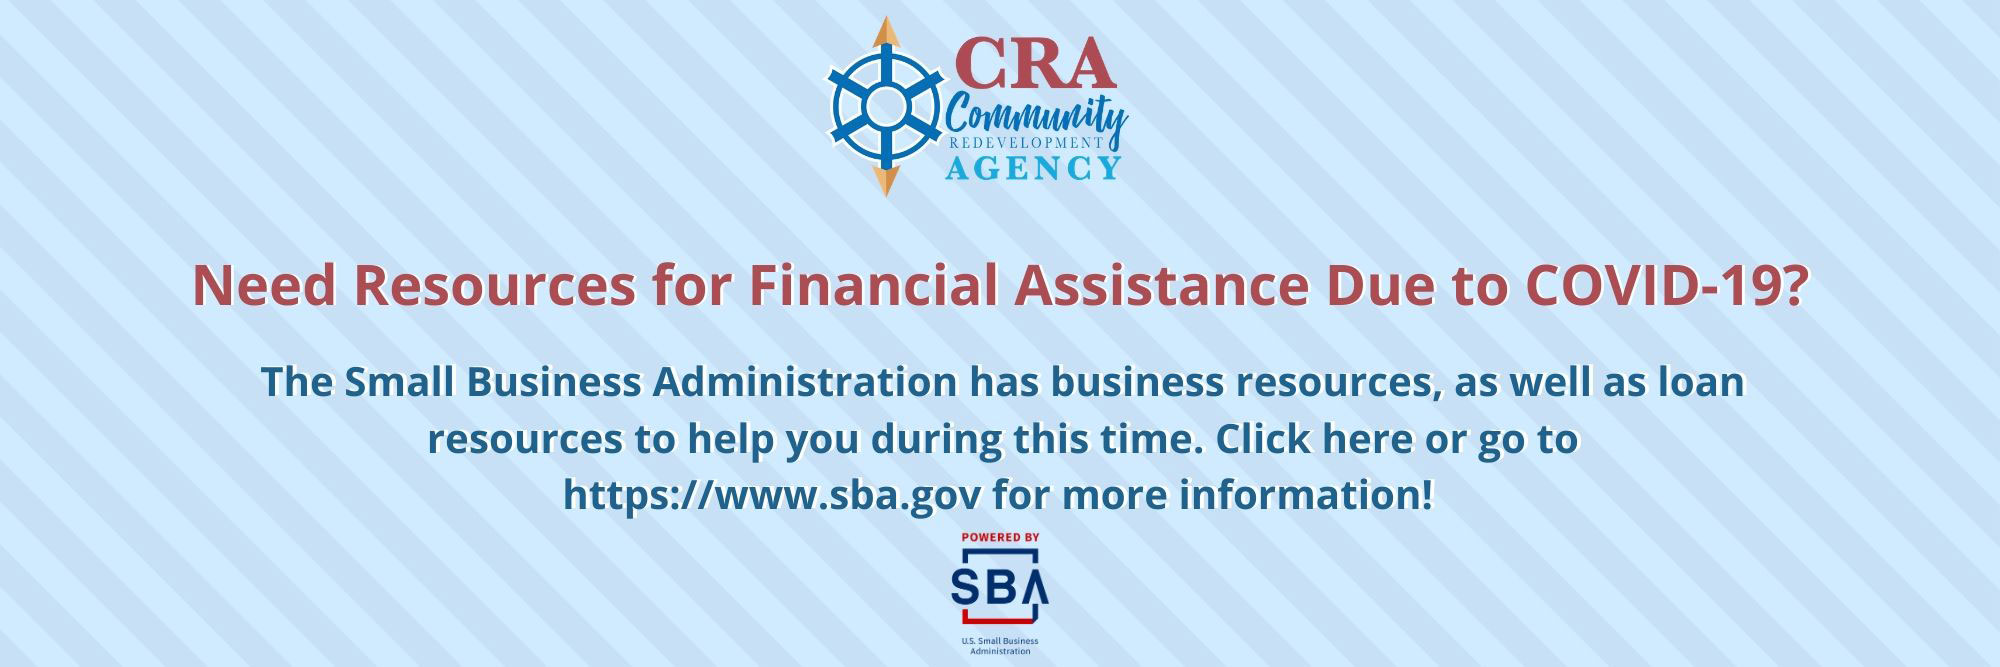 Need Resources for Financial Assistance Due to COVID-19?